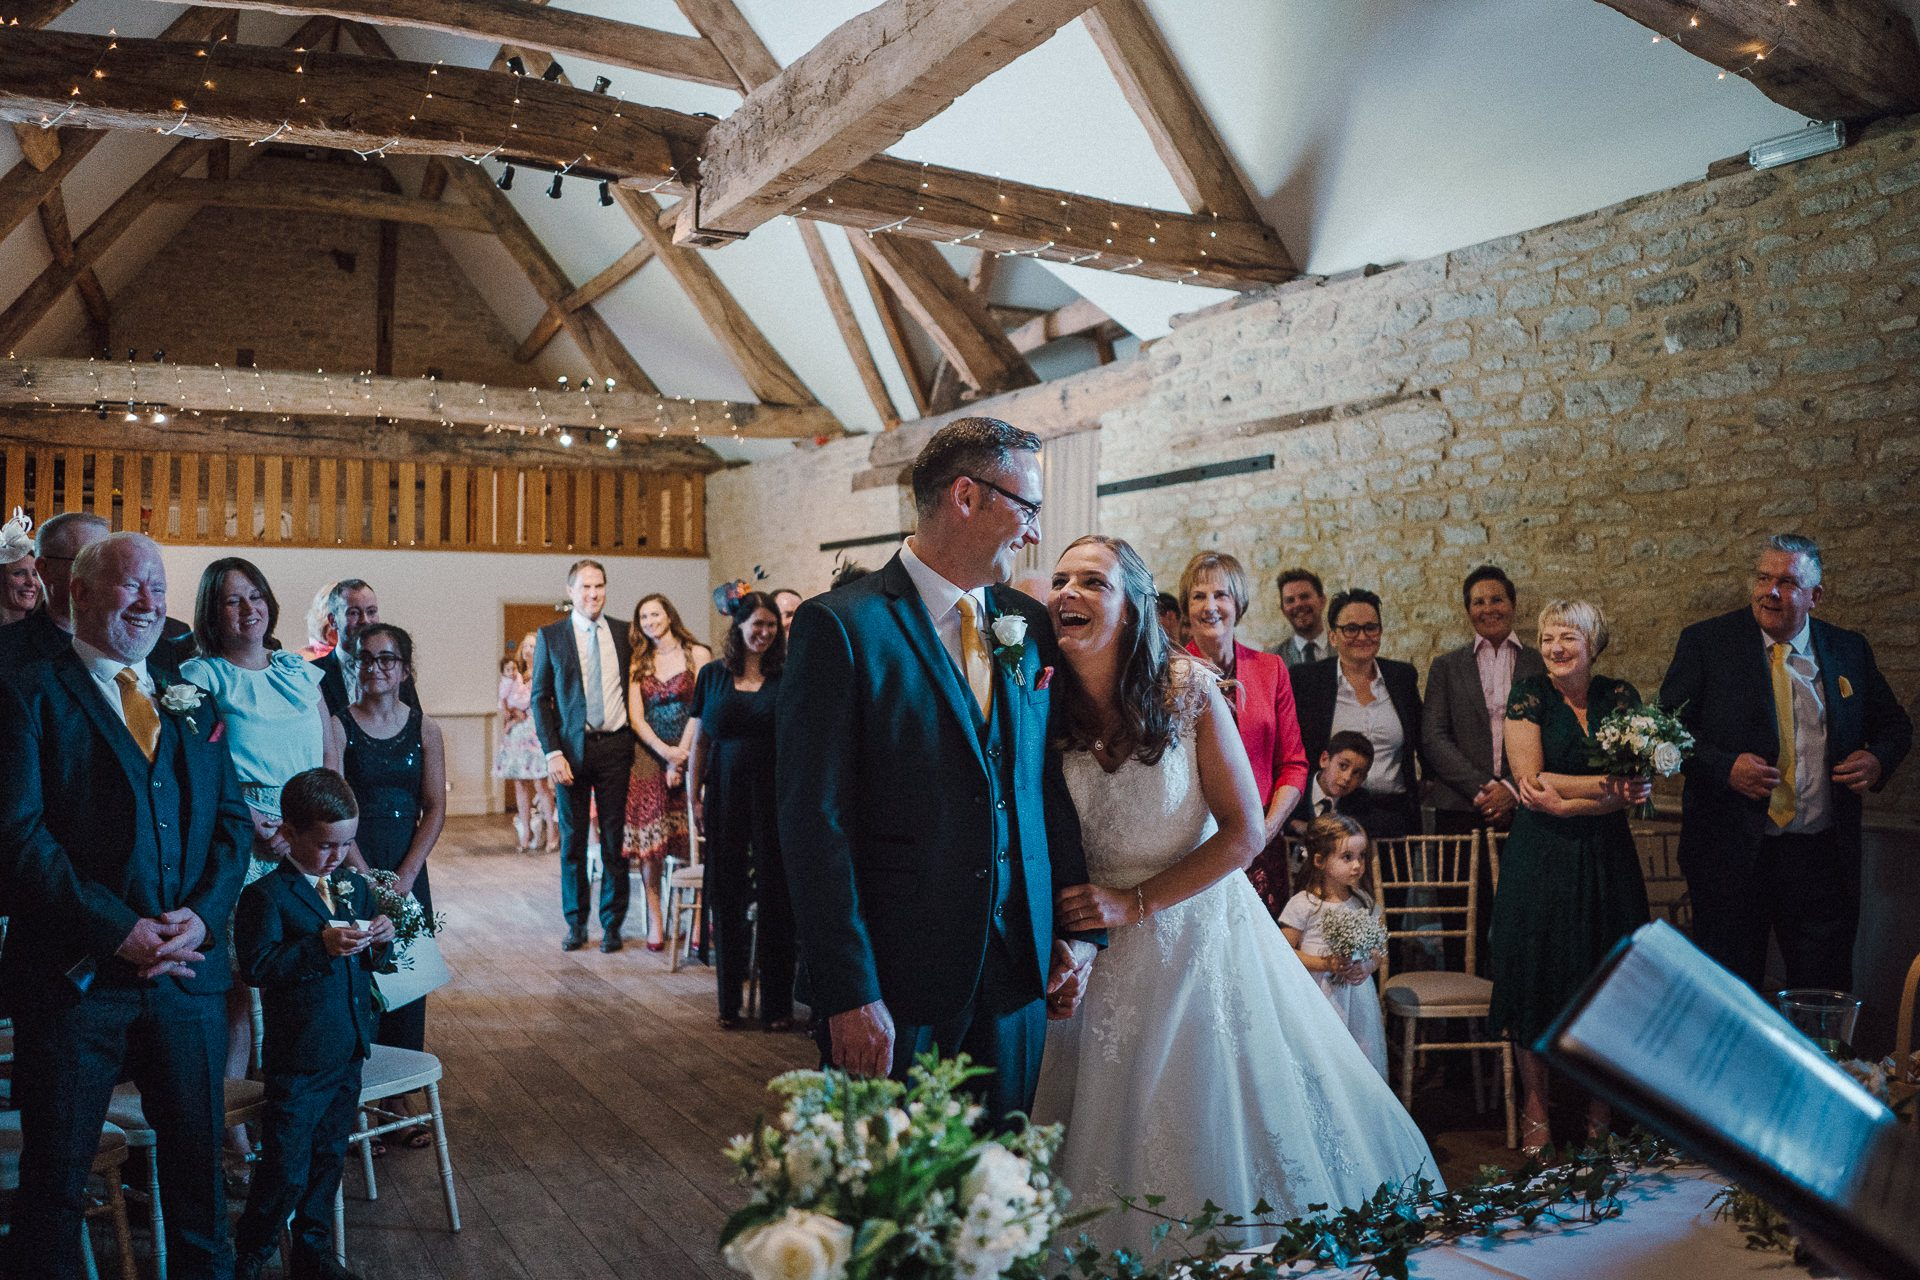 0116-DEVON-SOMERSET-WEDDING-PHOTOGRAPHER-0589-BEST-OF-2019-LOUISE-MAY-DEVON-SOMERSET-WEDDING-PHOTOGRAPHY-20190920-14-12-11-LM109604